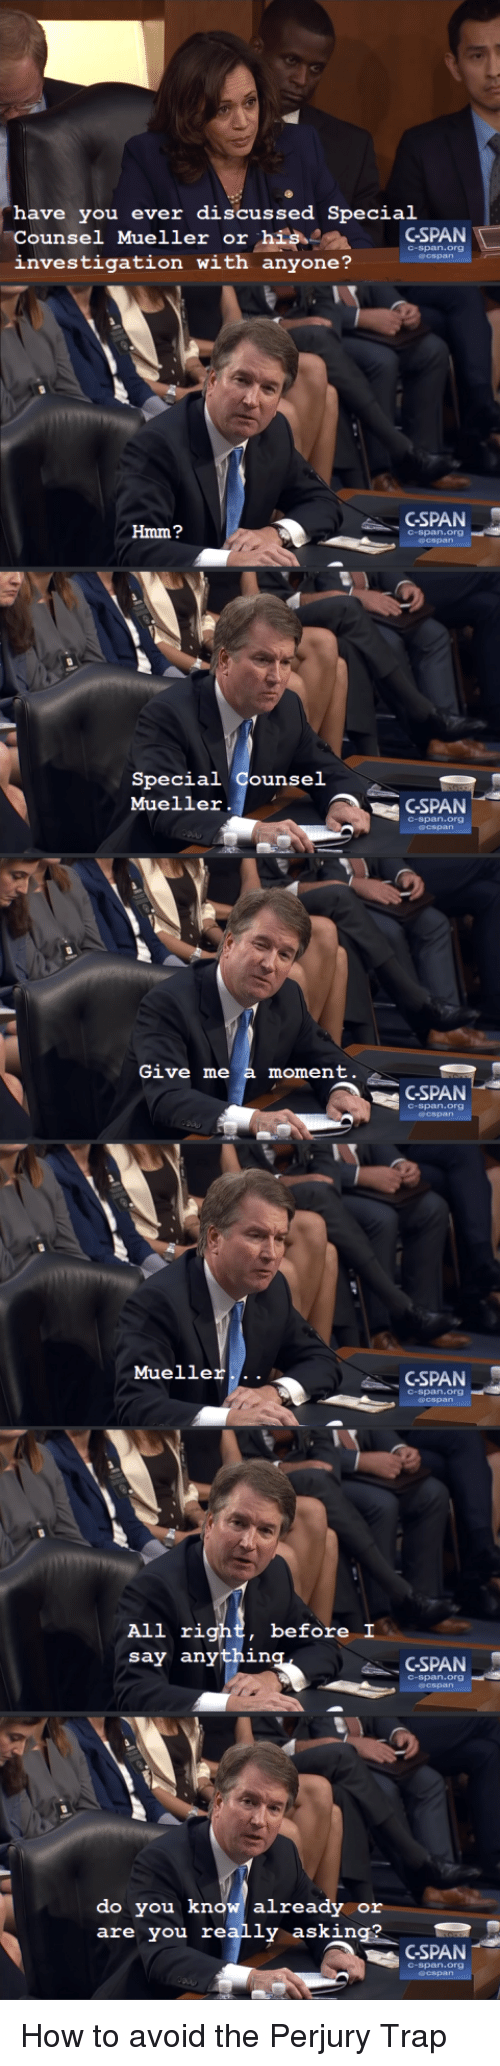 Give Me A Moment: have you ever discussed Special  Counsel Mueller or hisCSPAN  investigation with anyone?  C-span.org  GSPAN  Hmm?  C-span.org  Special Counsel  Mueller.  GSPAN  C-span.org  Give me a moment  GSPAN  C-span.org  Mueller...  GSPAN  C-span.org  before I  All rig  say anythin  CSPAN  C-span.org  do you know already or  are you really asking?  CSPAN  C-span.org How to avoid the Perjury Trap